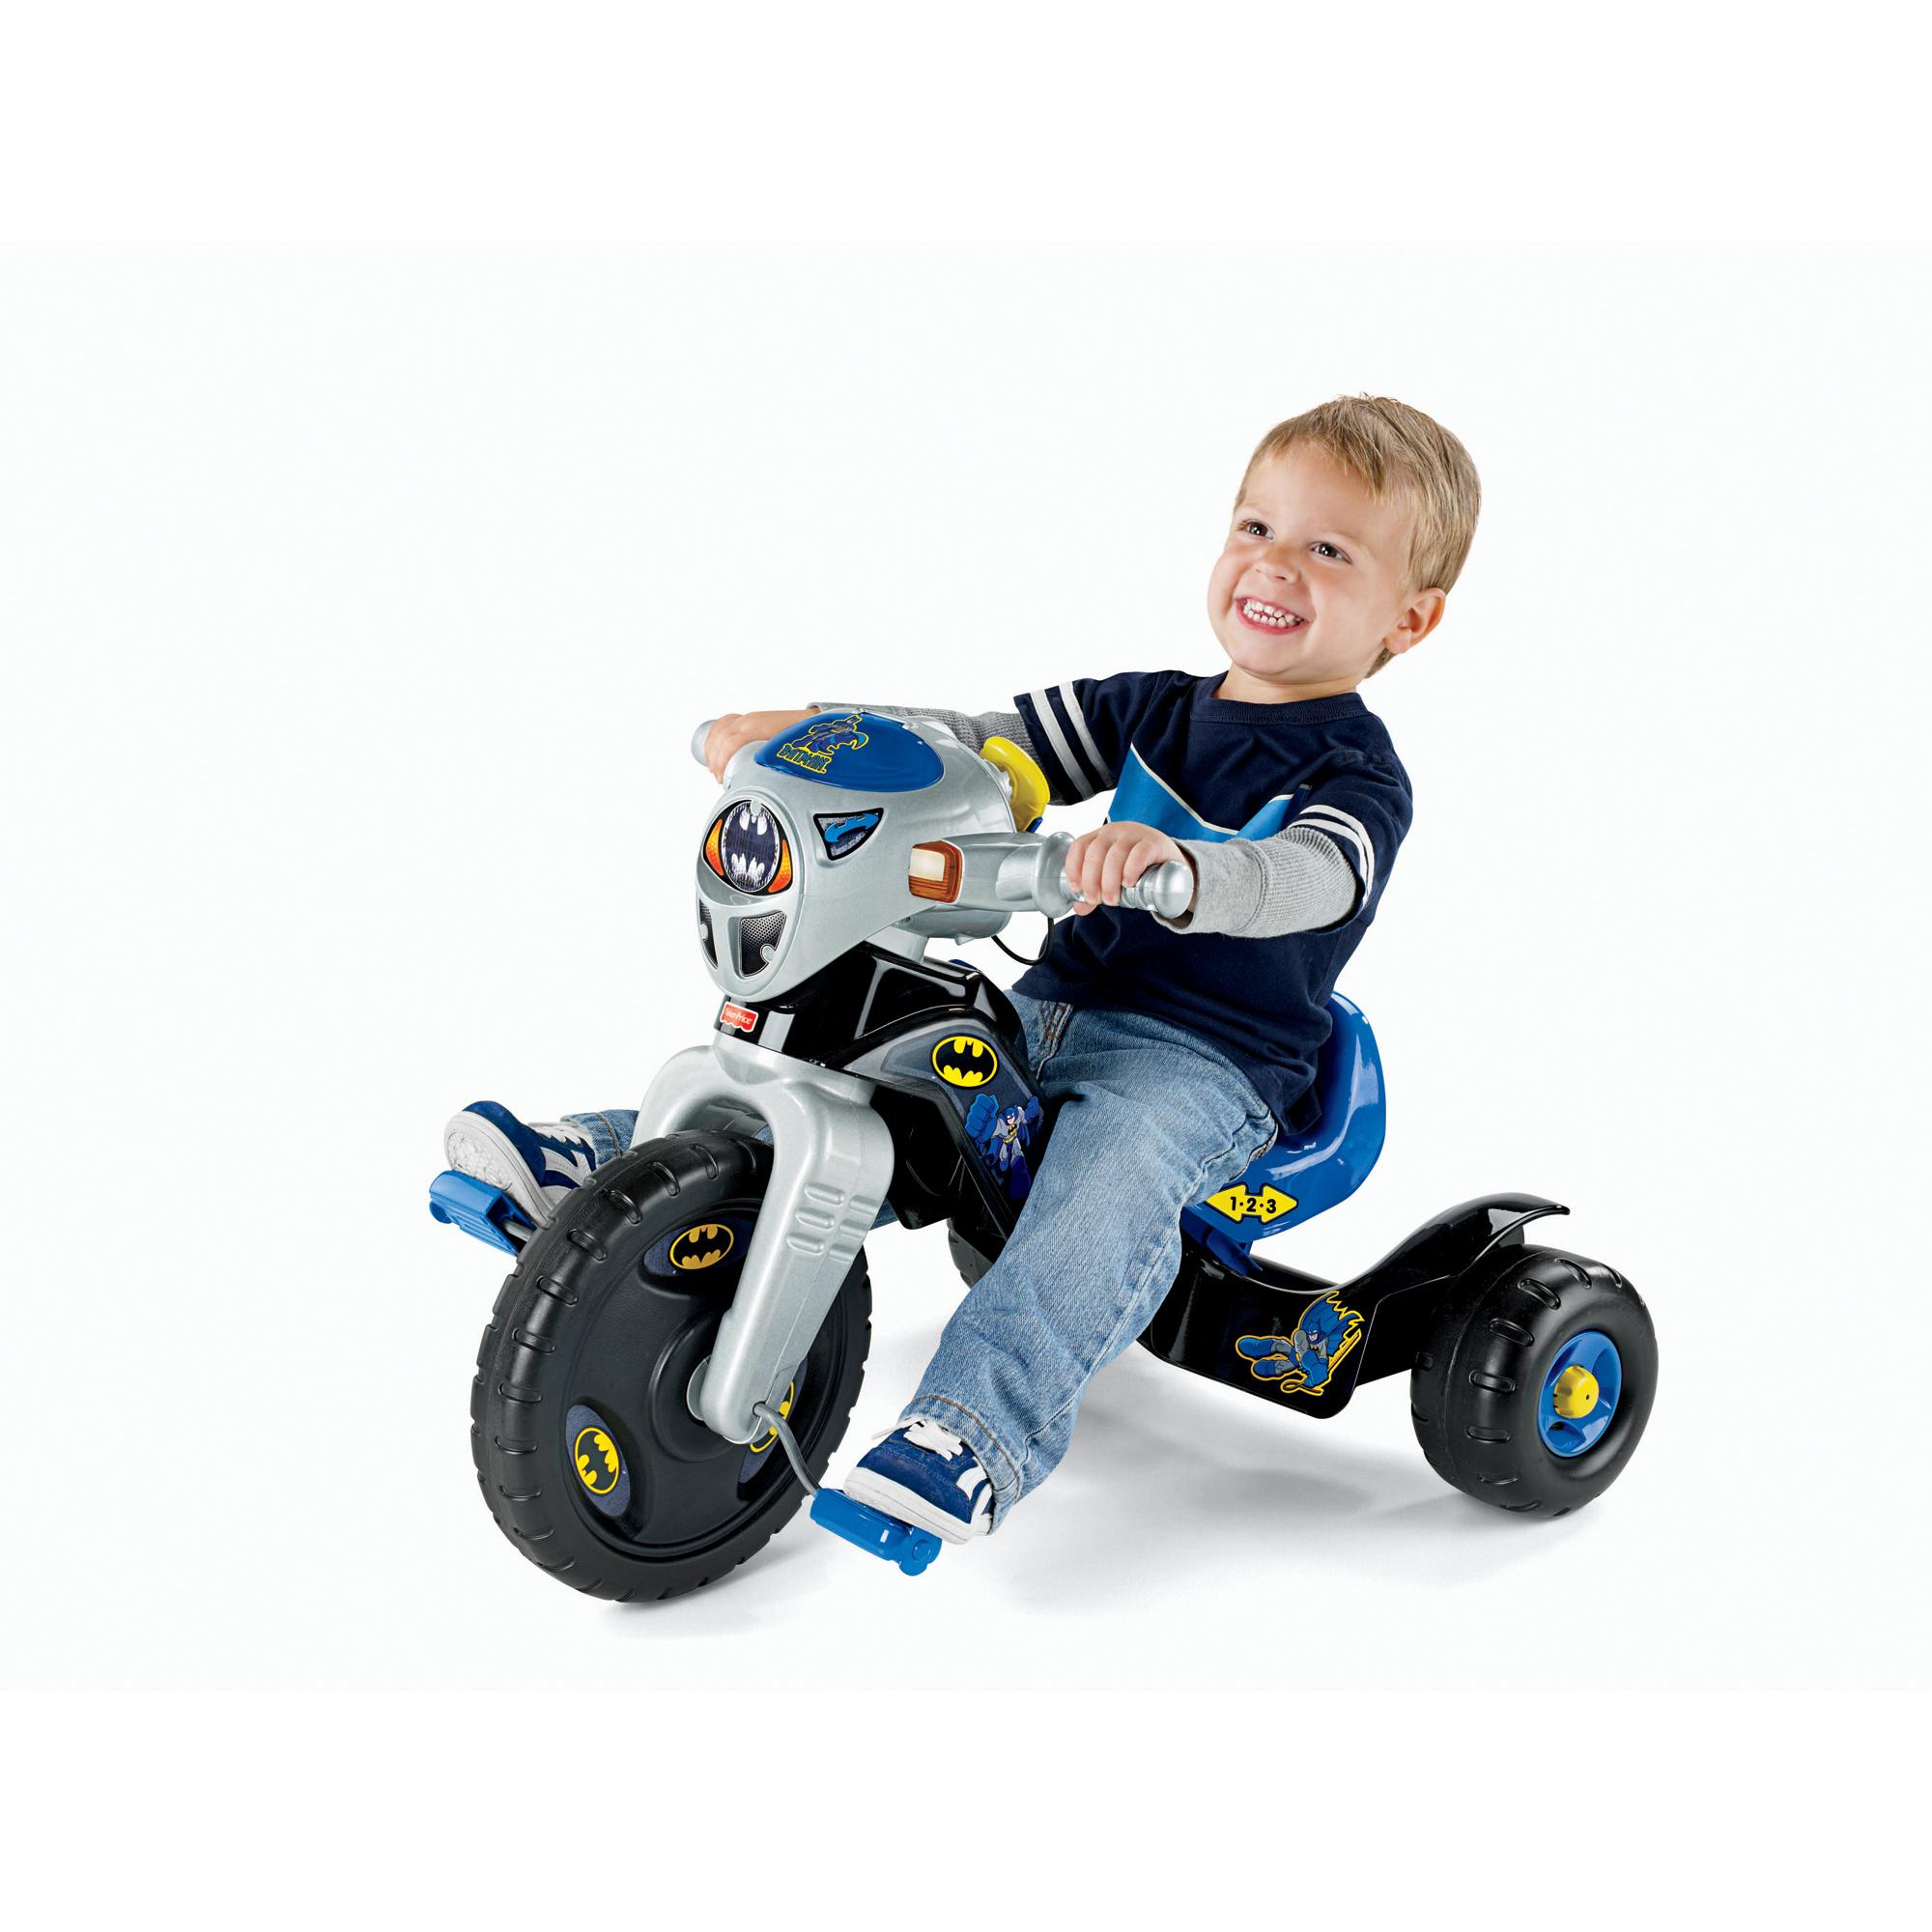 Fisher Price DC Super Friends Batman Lights & Sounds Trike by Generic